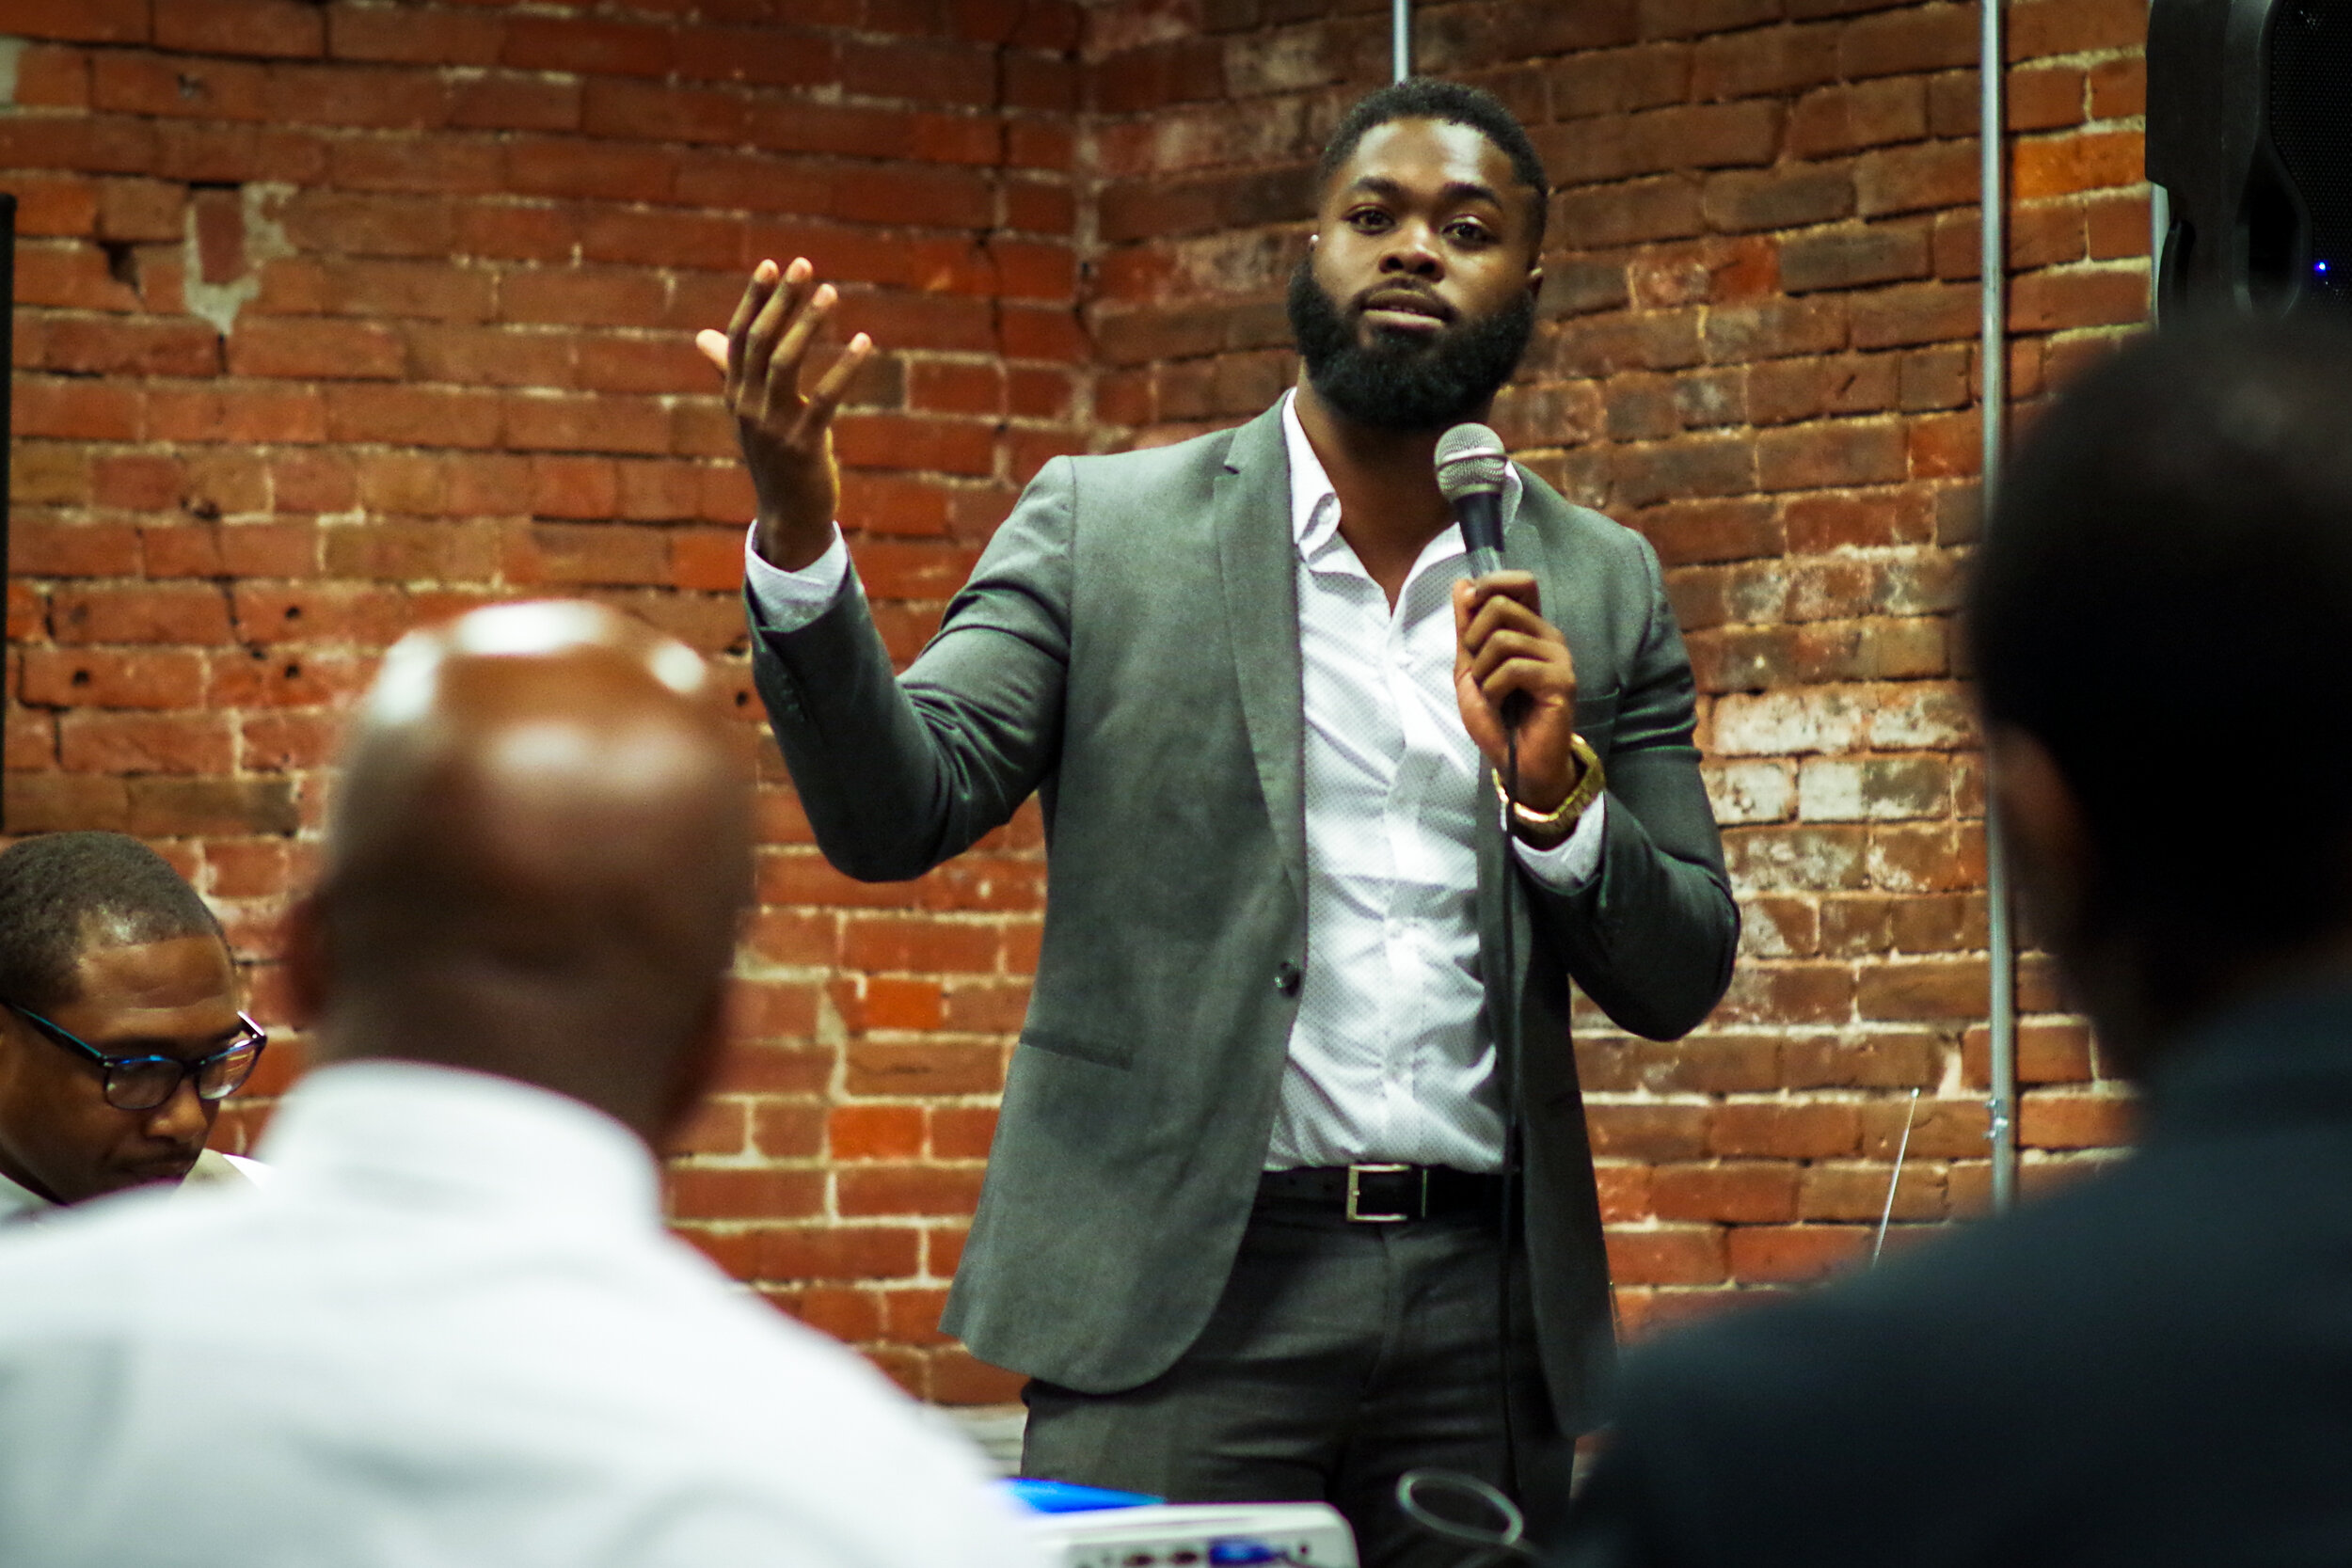 America Achieves Fellow William Hayes speaks at a convening for the Fellowship of Black Male Educators, a nonprofit he co-founded with other educators. Their work aims to recruit and support Black teachers.